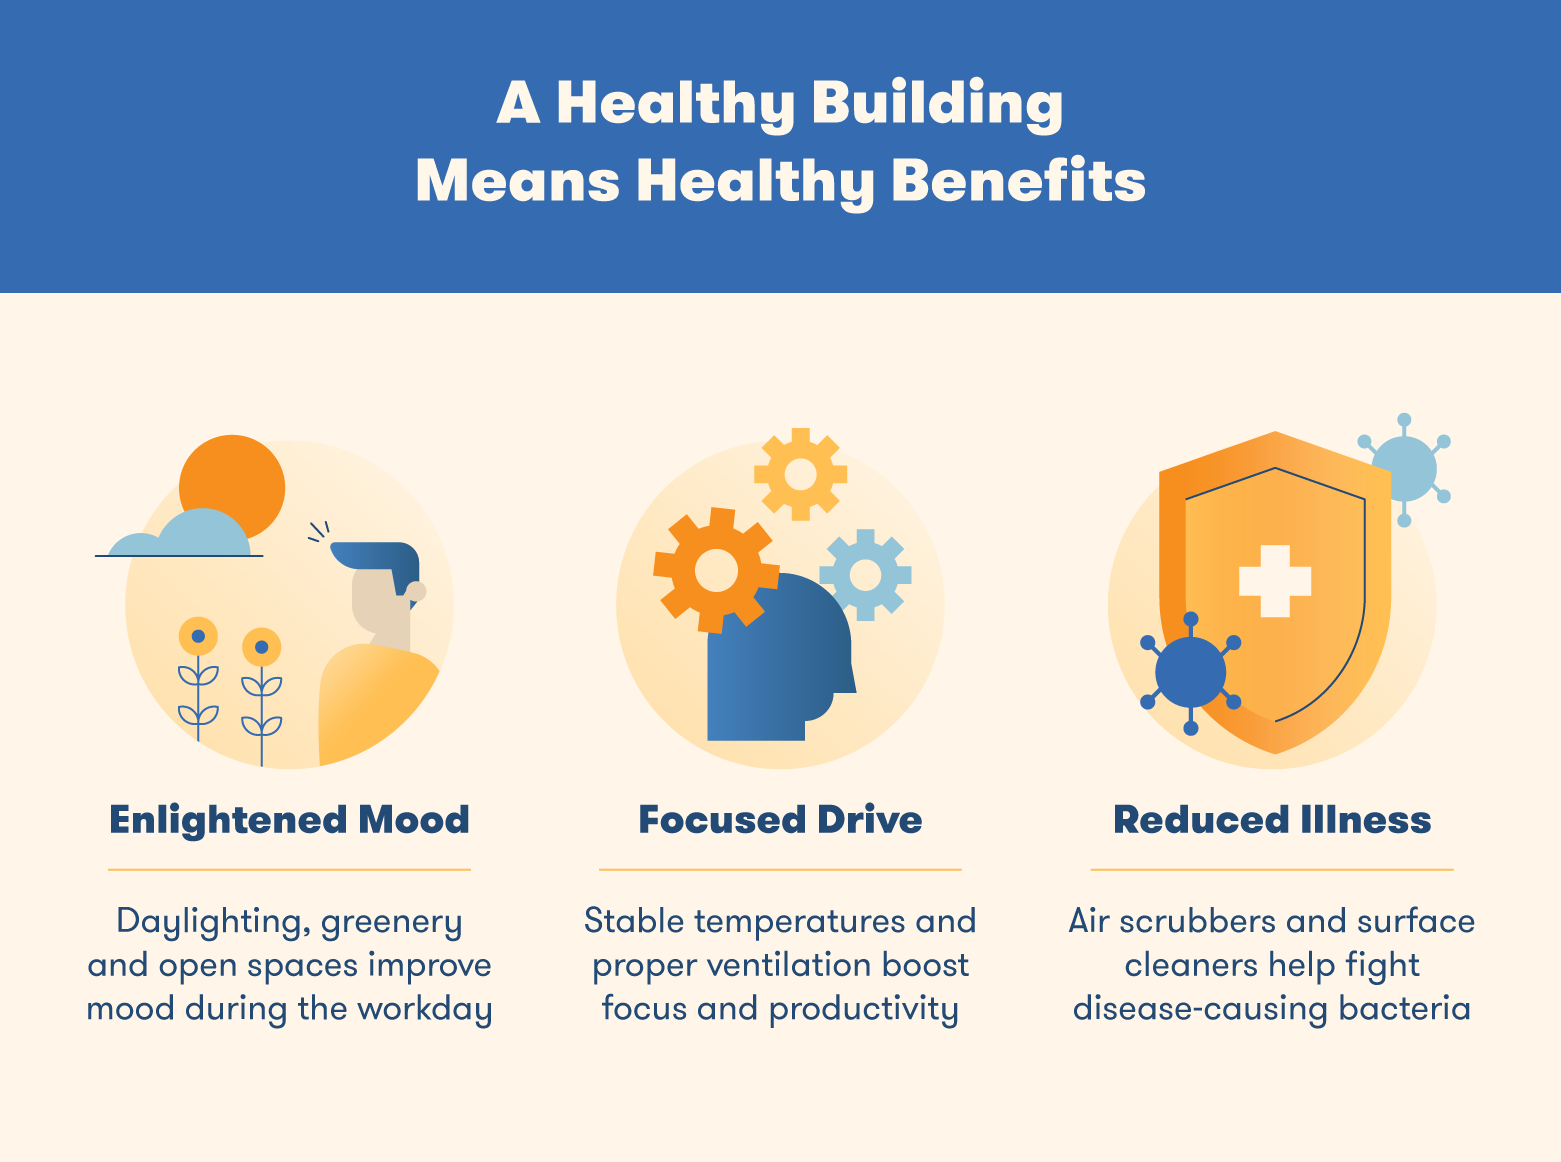 benefits of healthy buildings